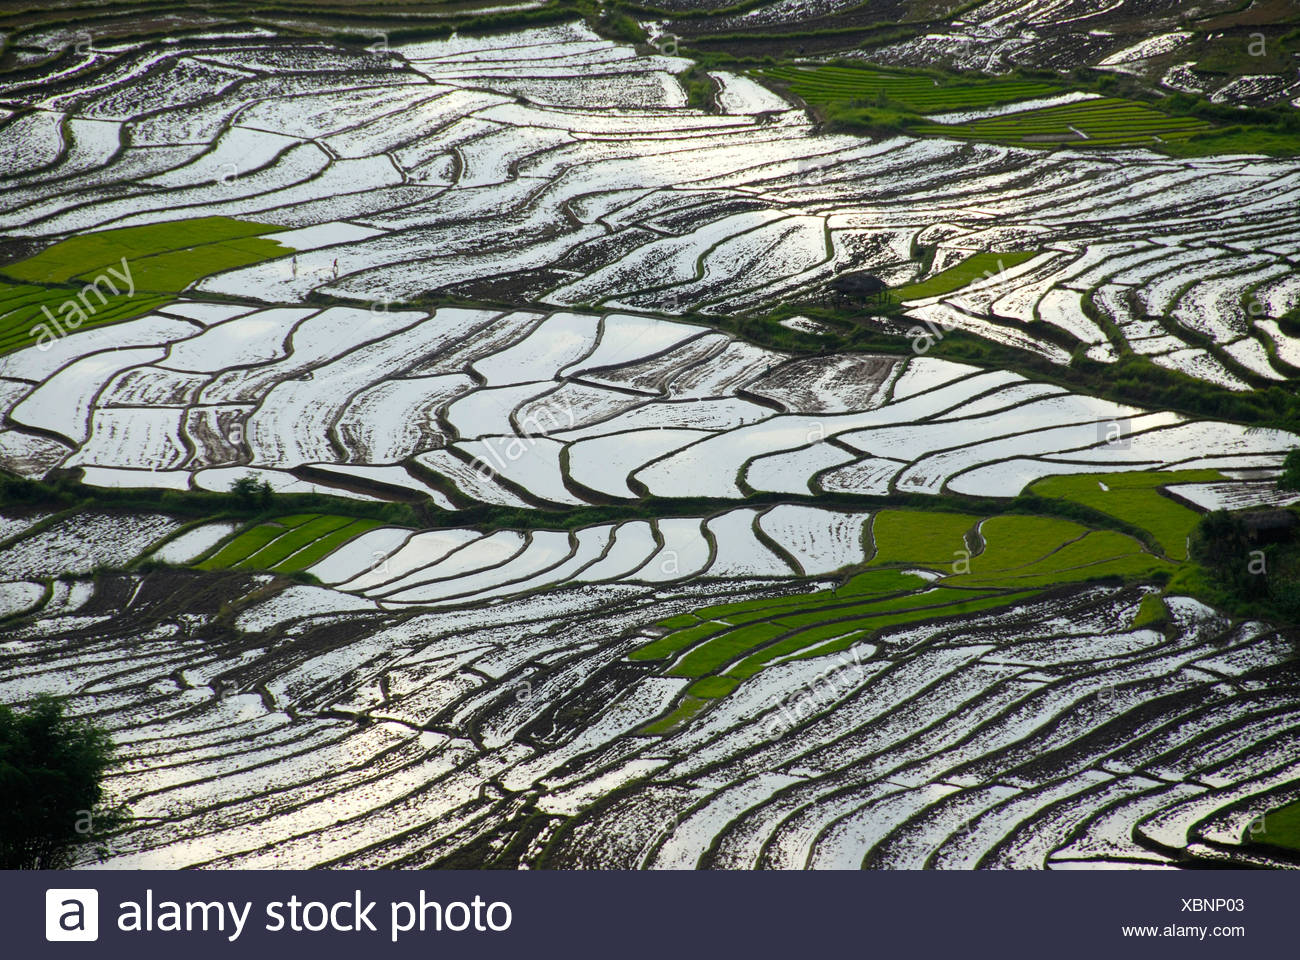 Rice, rice cultivation, rice terraces on a slope filled with water at Ou Tai, Gnot Ou district, Yot Ou, Phongsali, Phongsali Pr - Stock Image